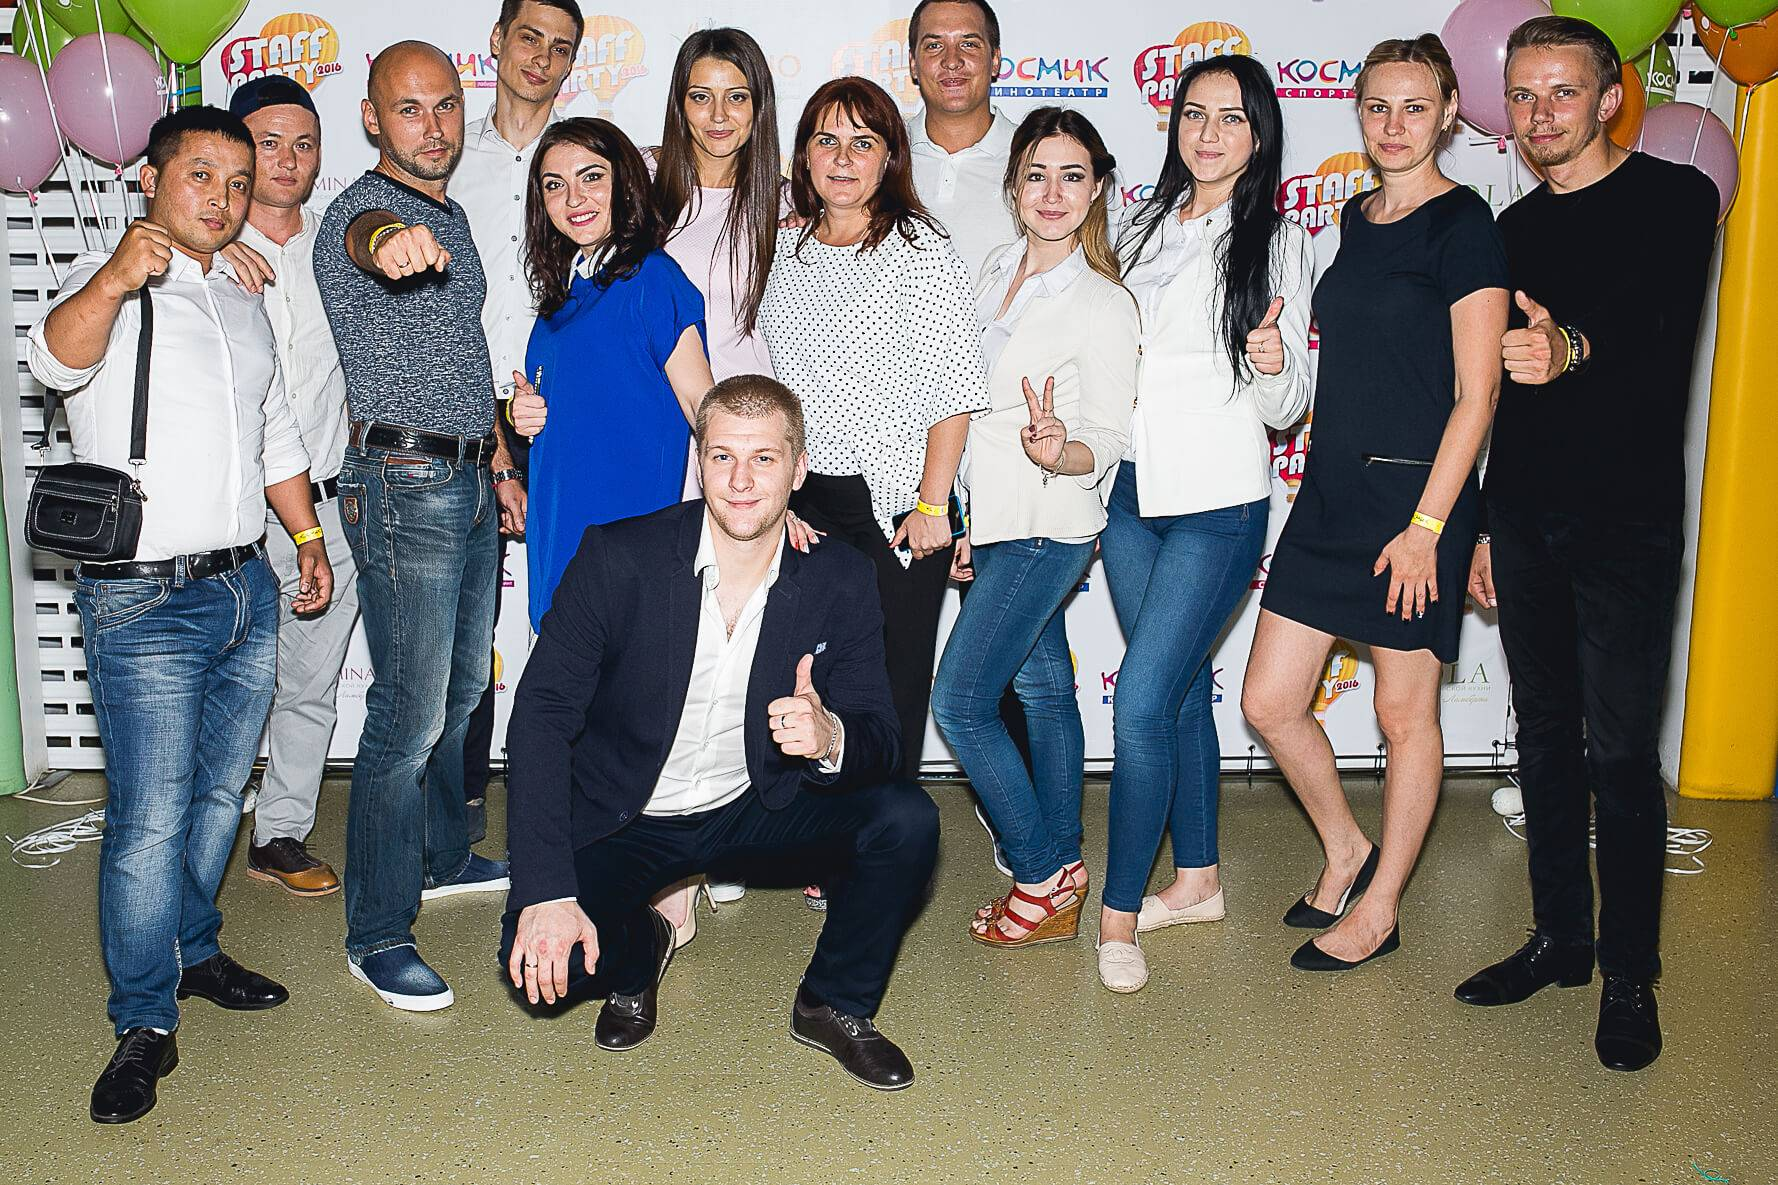 Staff-party 2016-14